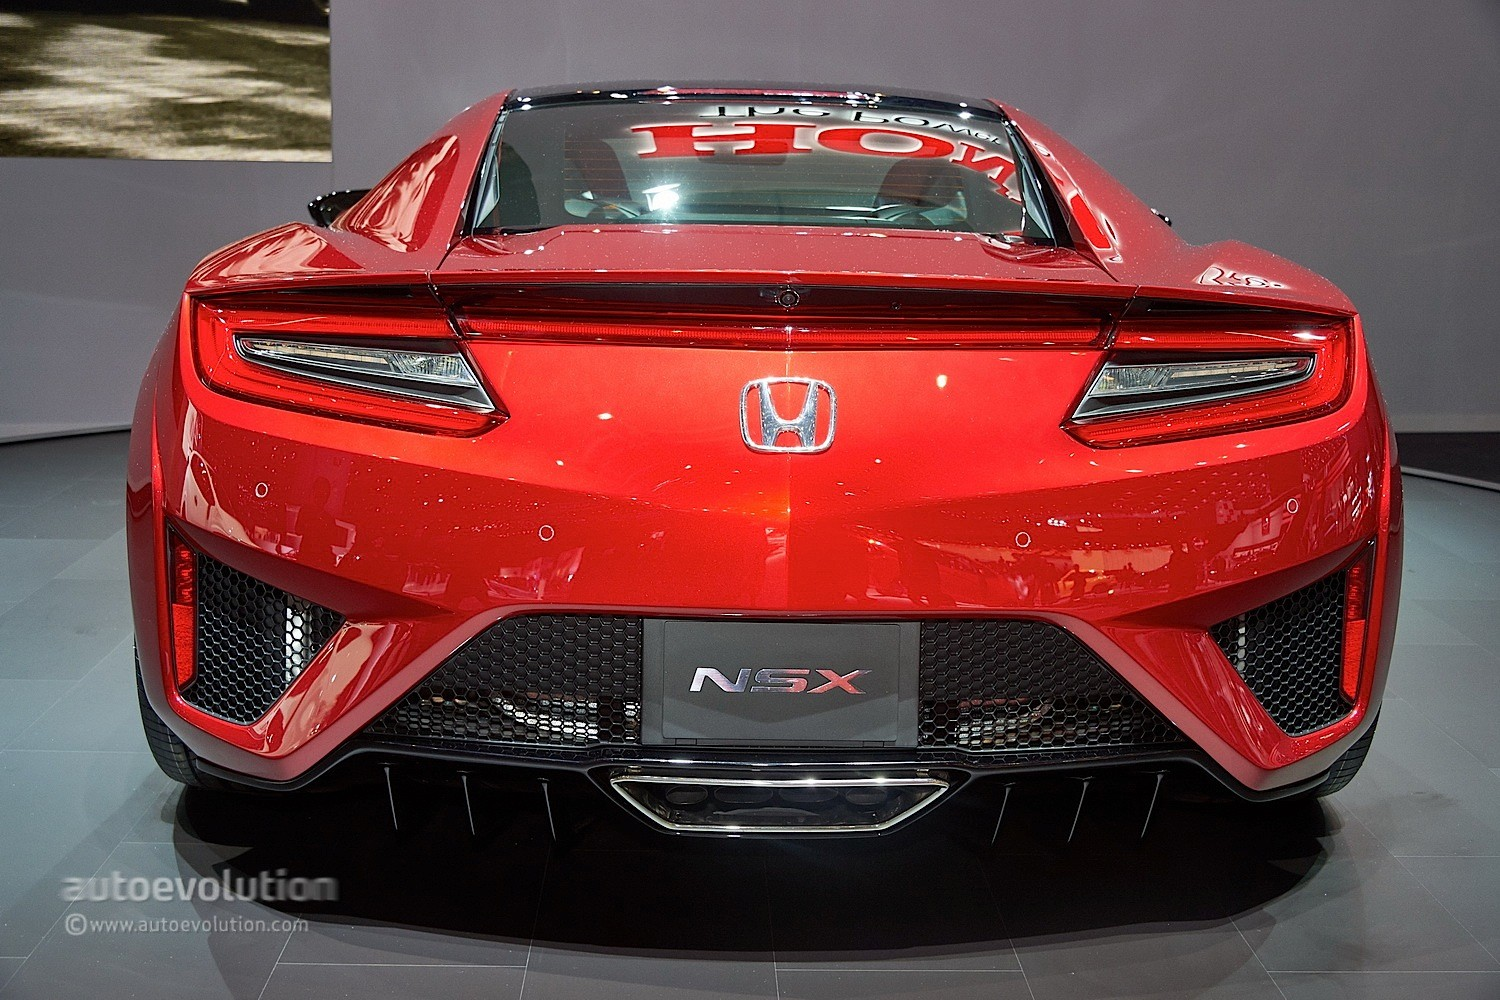 Difference Between Civic And Accord >> Honda NSX Reborn as a Hybrid Supercar at Geneva 2015 - Video, Live Photos - autoevolution